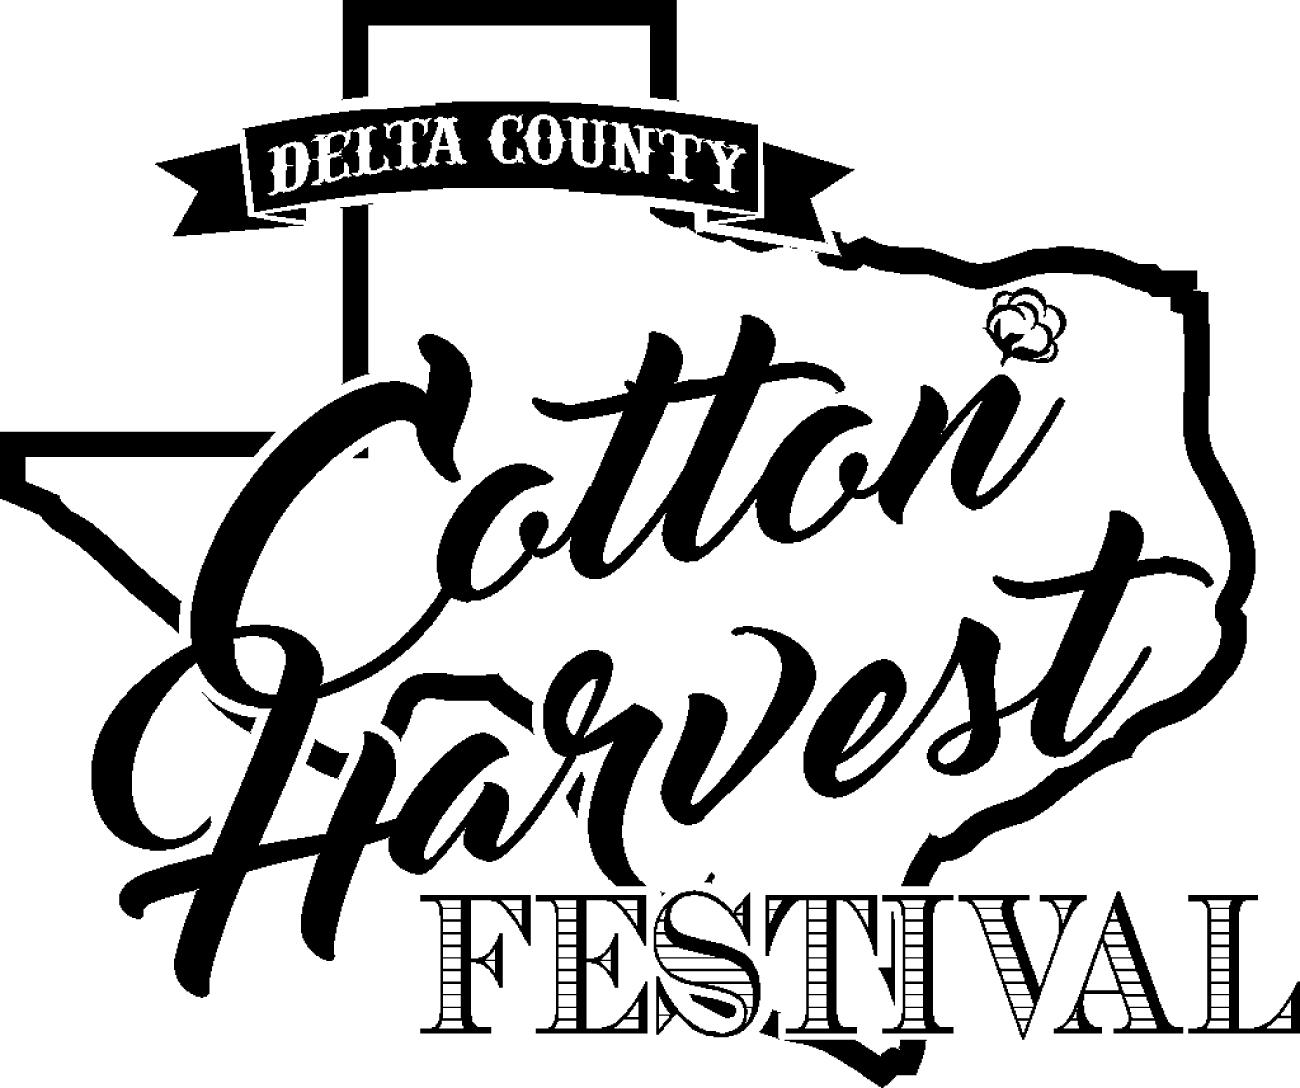 1300x1088 Cotton Harvest Festival Arrives In Delta County, Featuring Texas